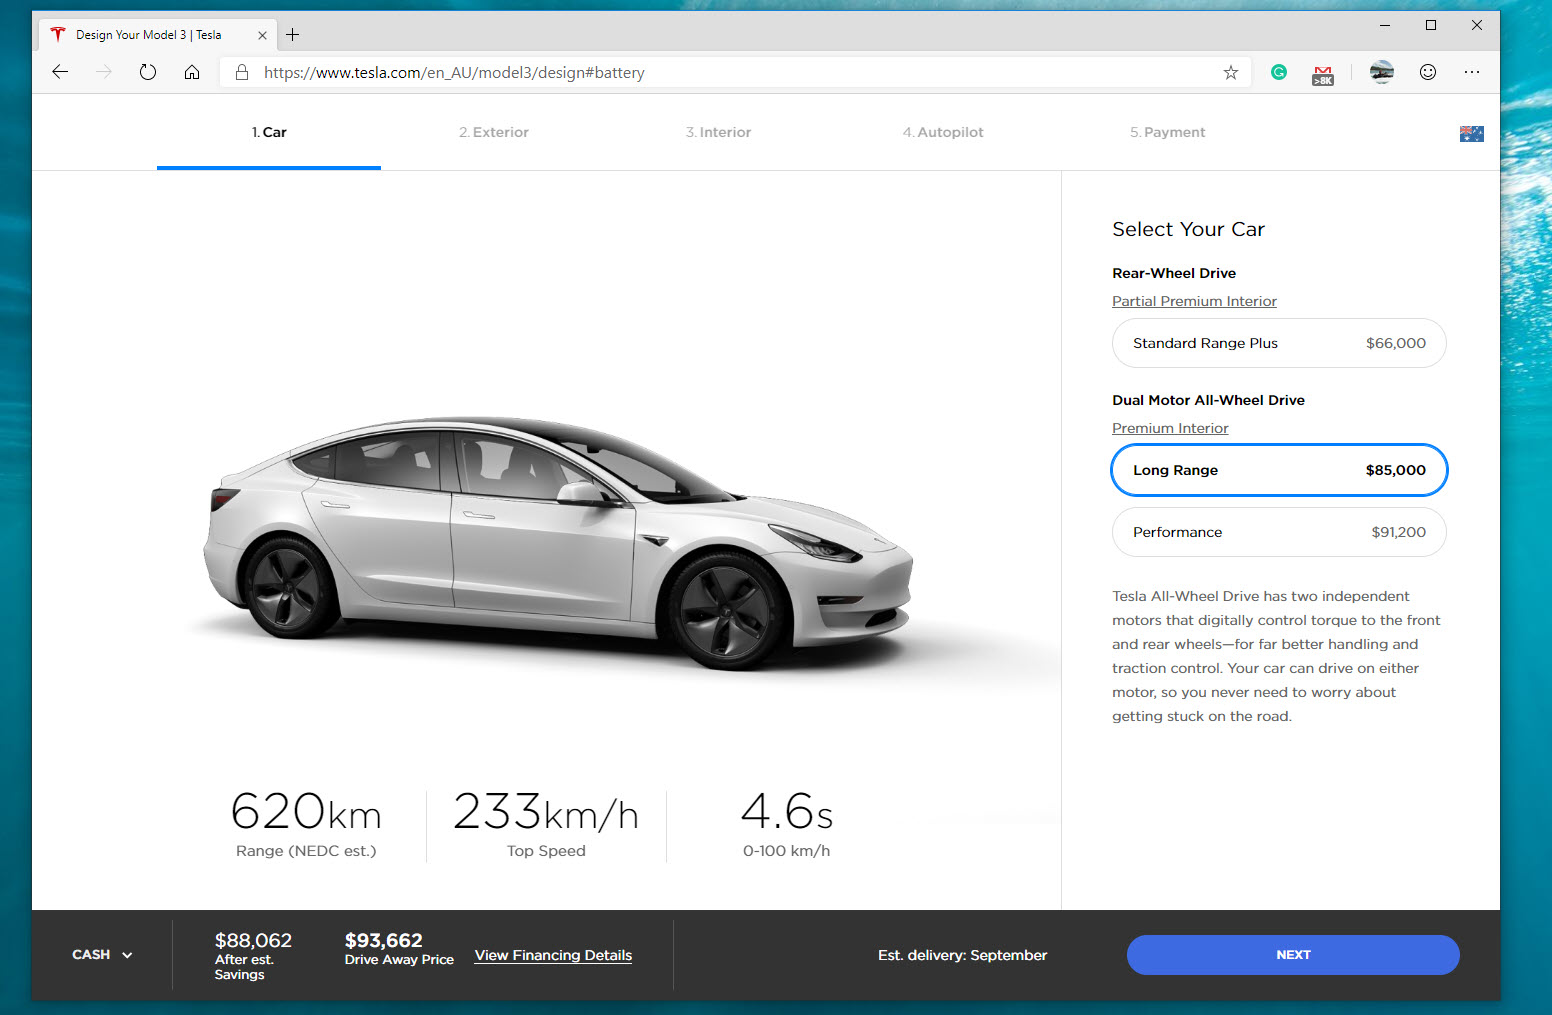 Tesla changes pricing, configurations for Model S, X, 3